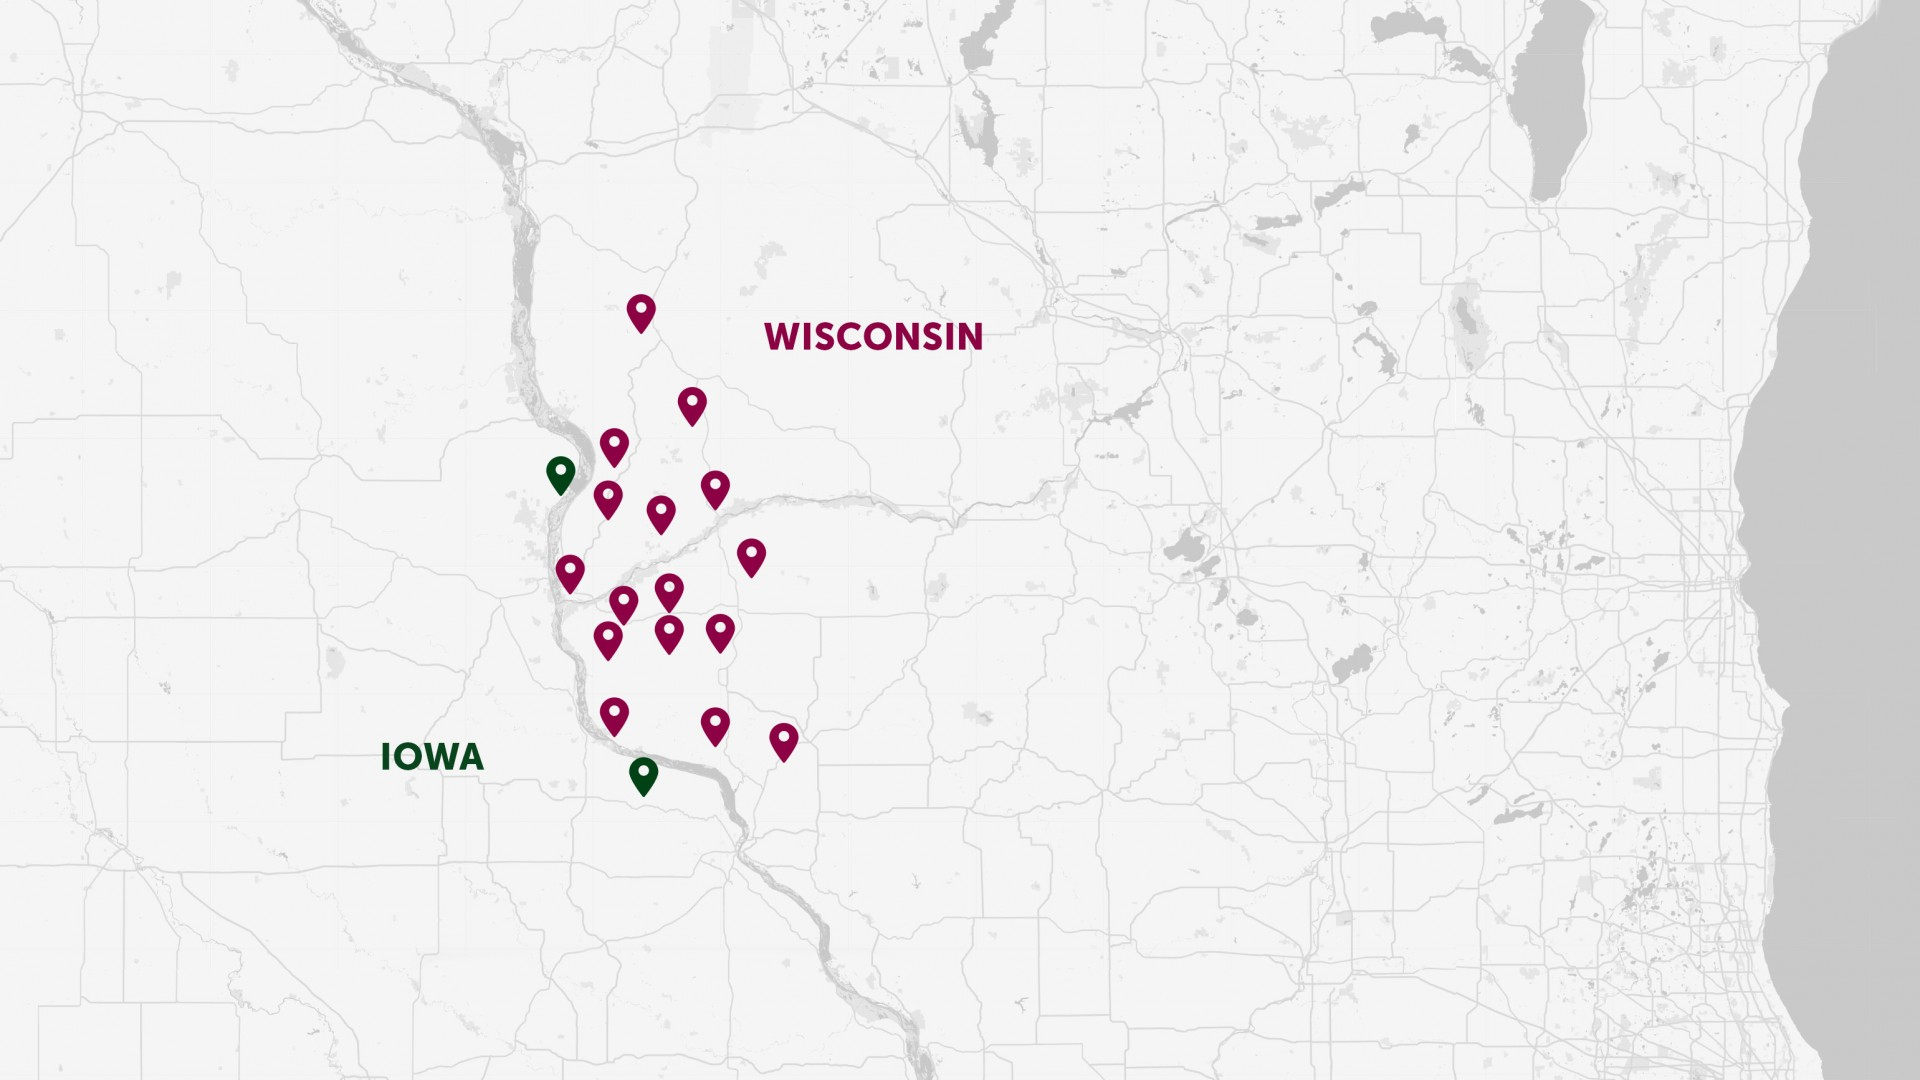 Map with pins showing bank locations in Iowa and Wisconsin